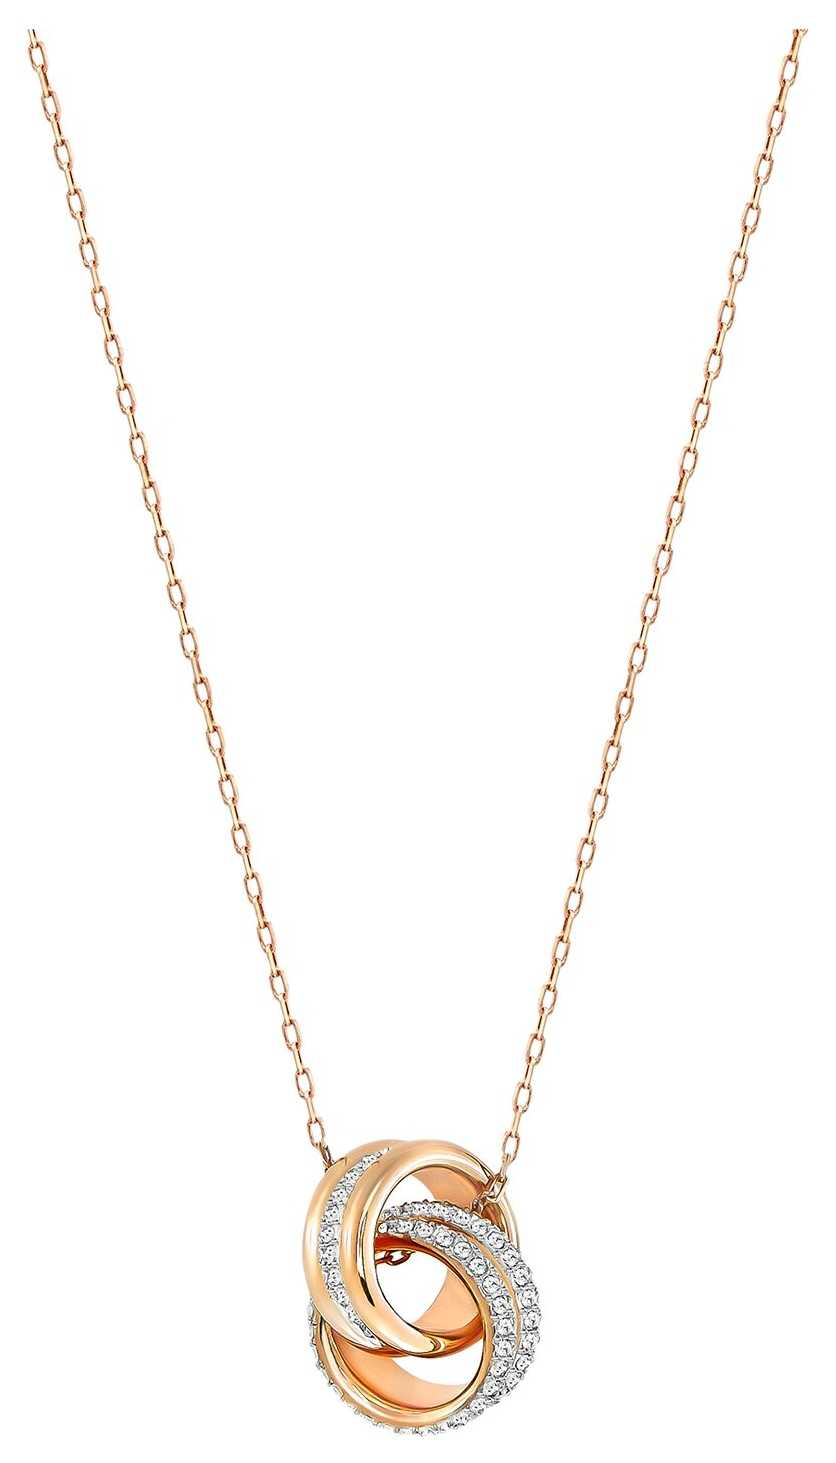 Swarovski Further   Rose Gold Plated Pendant Necklace   White Stones 5240525